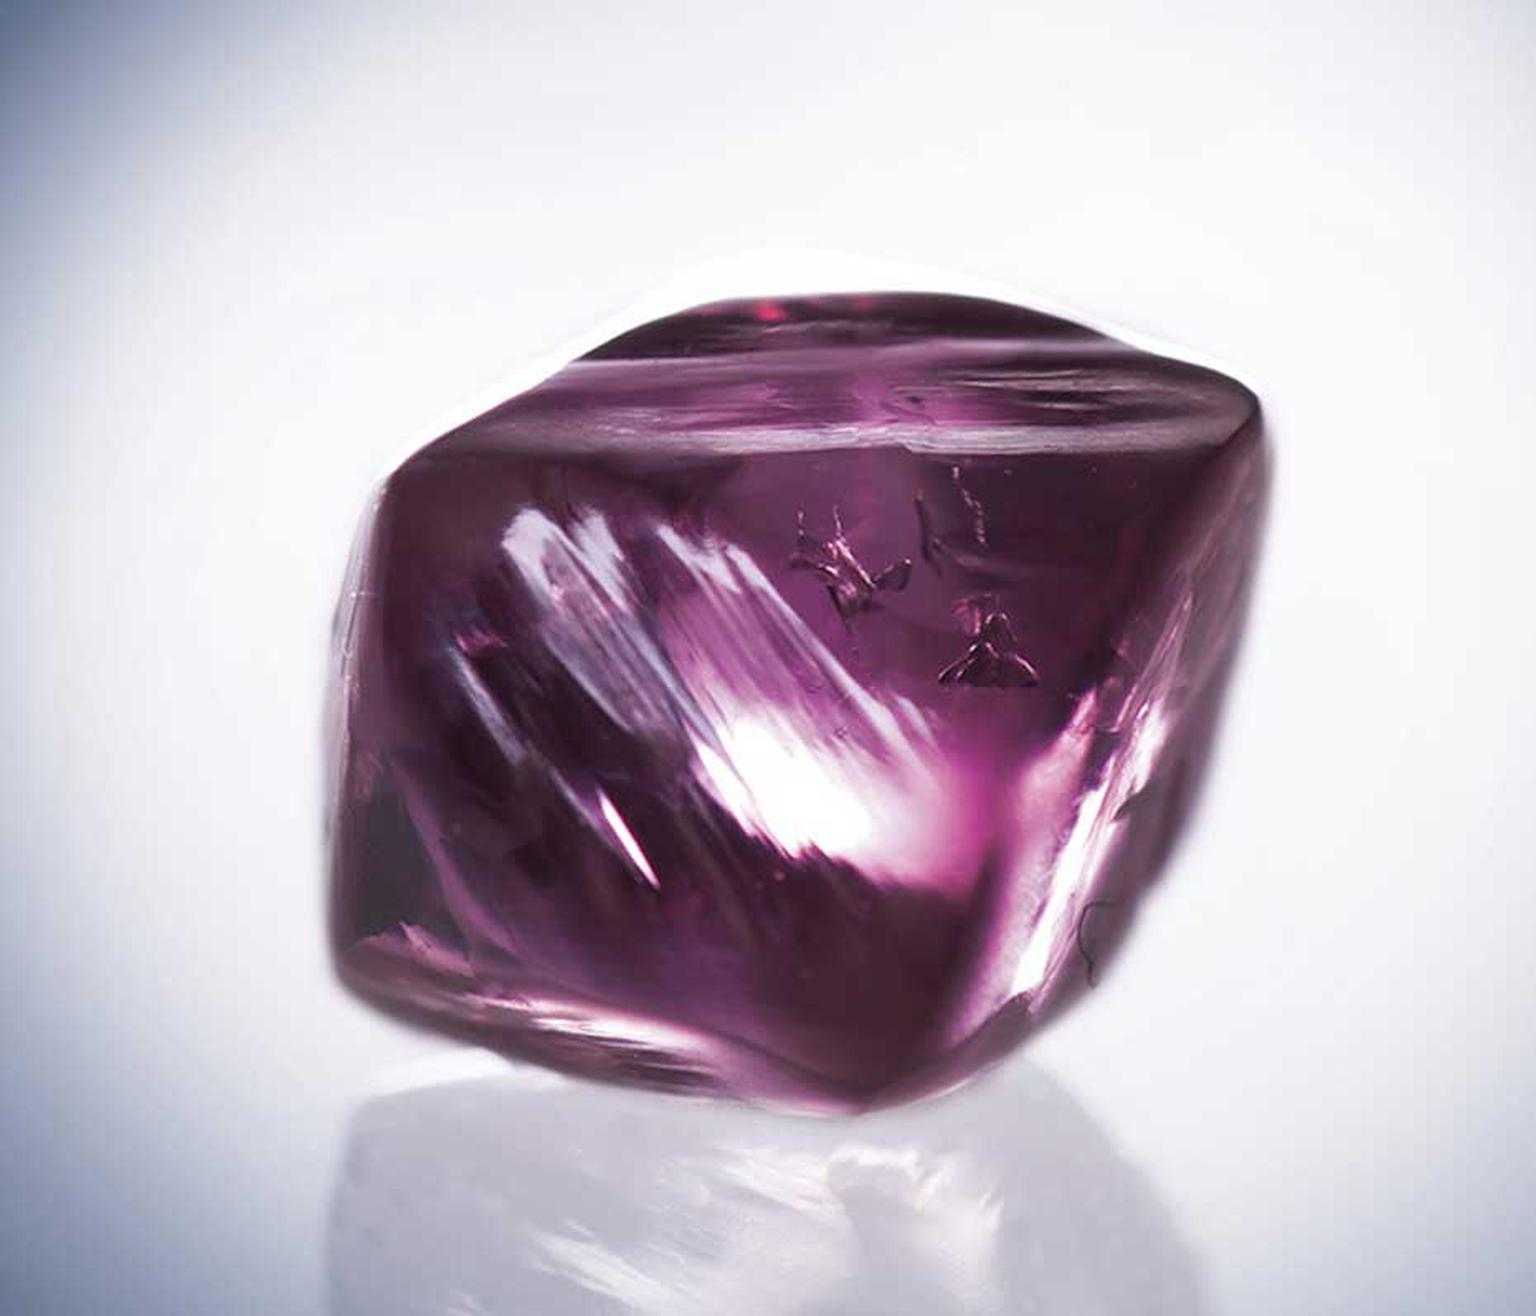 Once they have been found, rough diamonds are cut and polished. Pictured here is the Argyle Siren pink diamond before it was cut into a 1.32ct square radiant cut pink diamond.